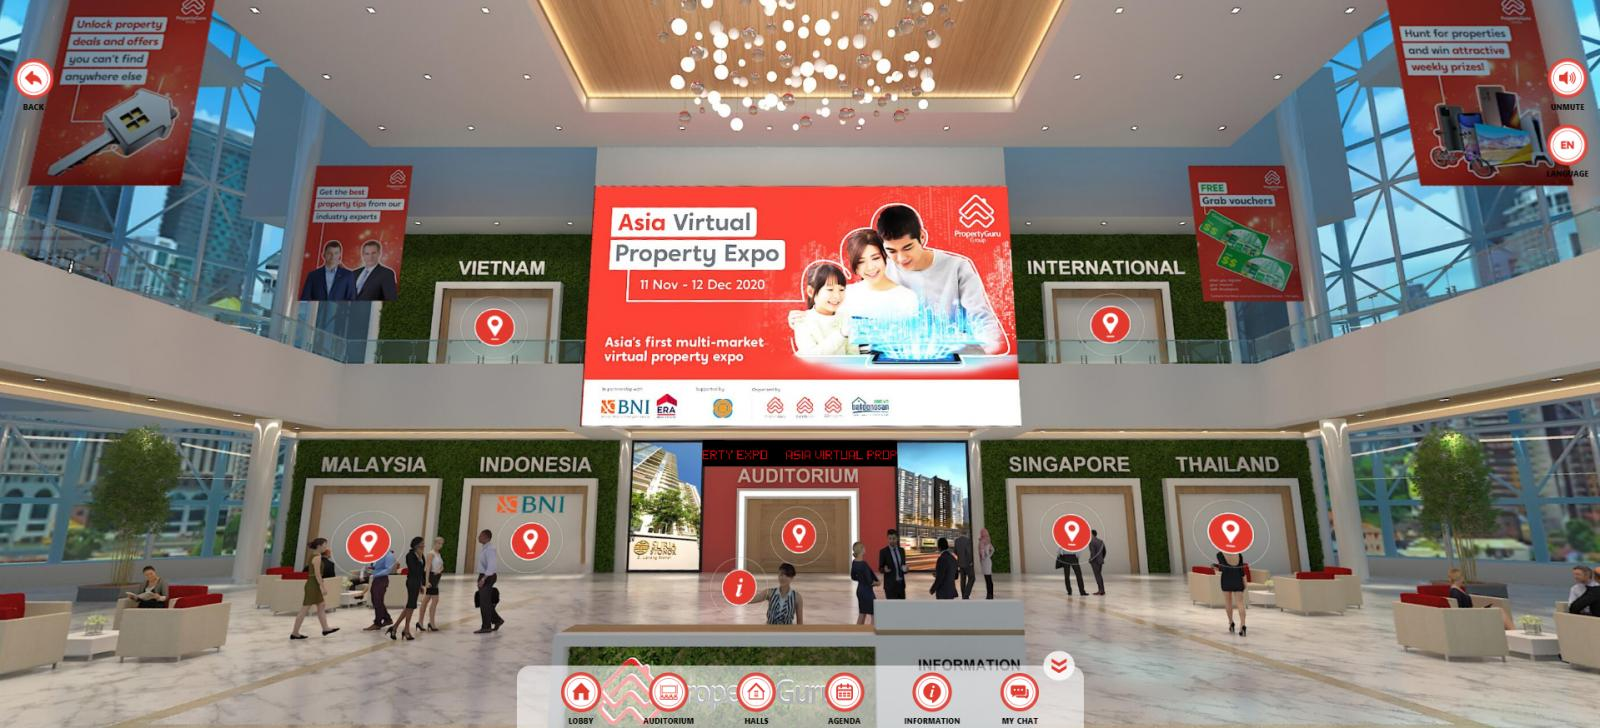 Asia Virtual Property Expo, hosted by PropertyGuru